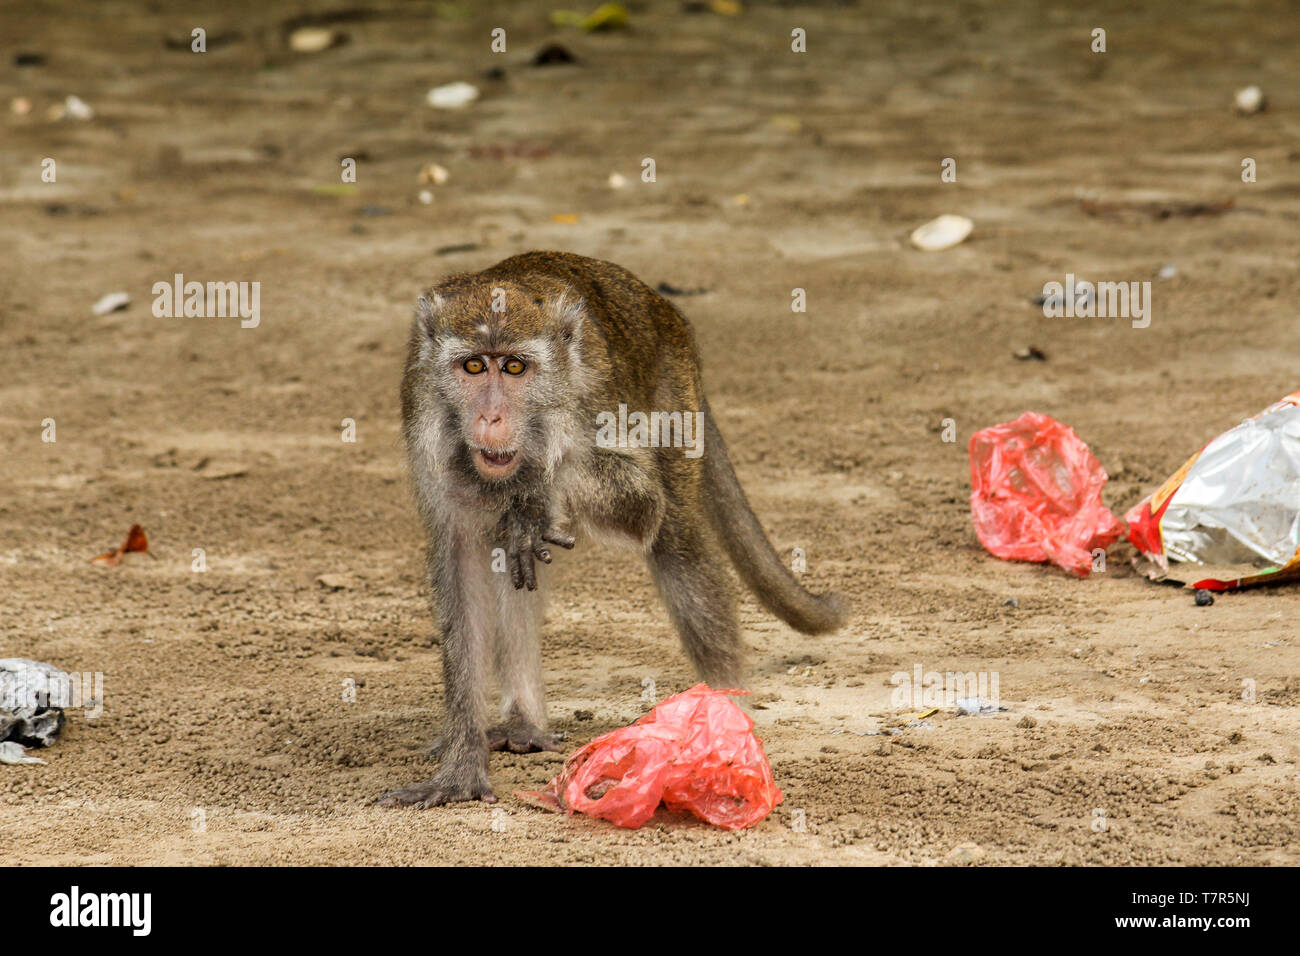 A small macaque gibbon at Bako, National Park, Borneo picks through the rubbish and plastic bags on the beach. - Stock Image